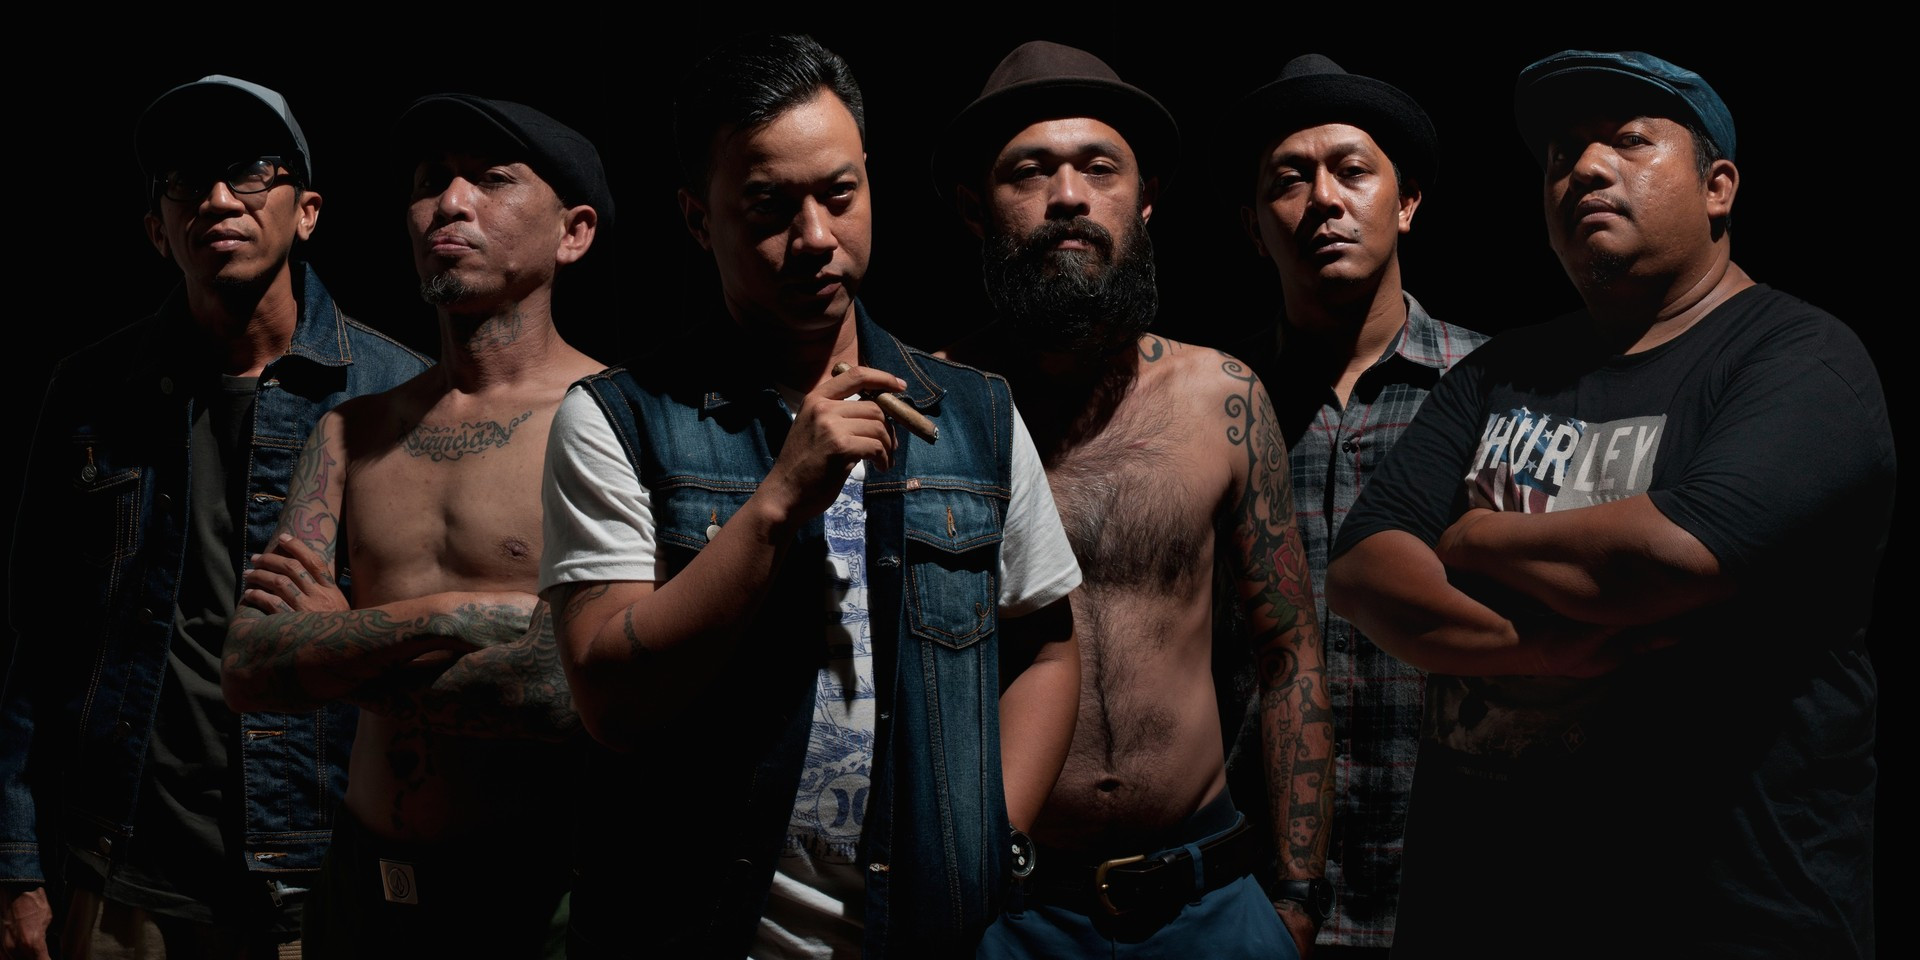 Indonesian ska band Shaggydog releases album 'Putra Nusantara' on vinyl